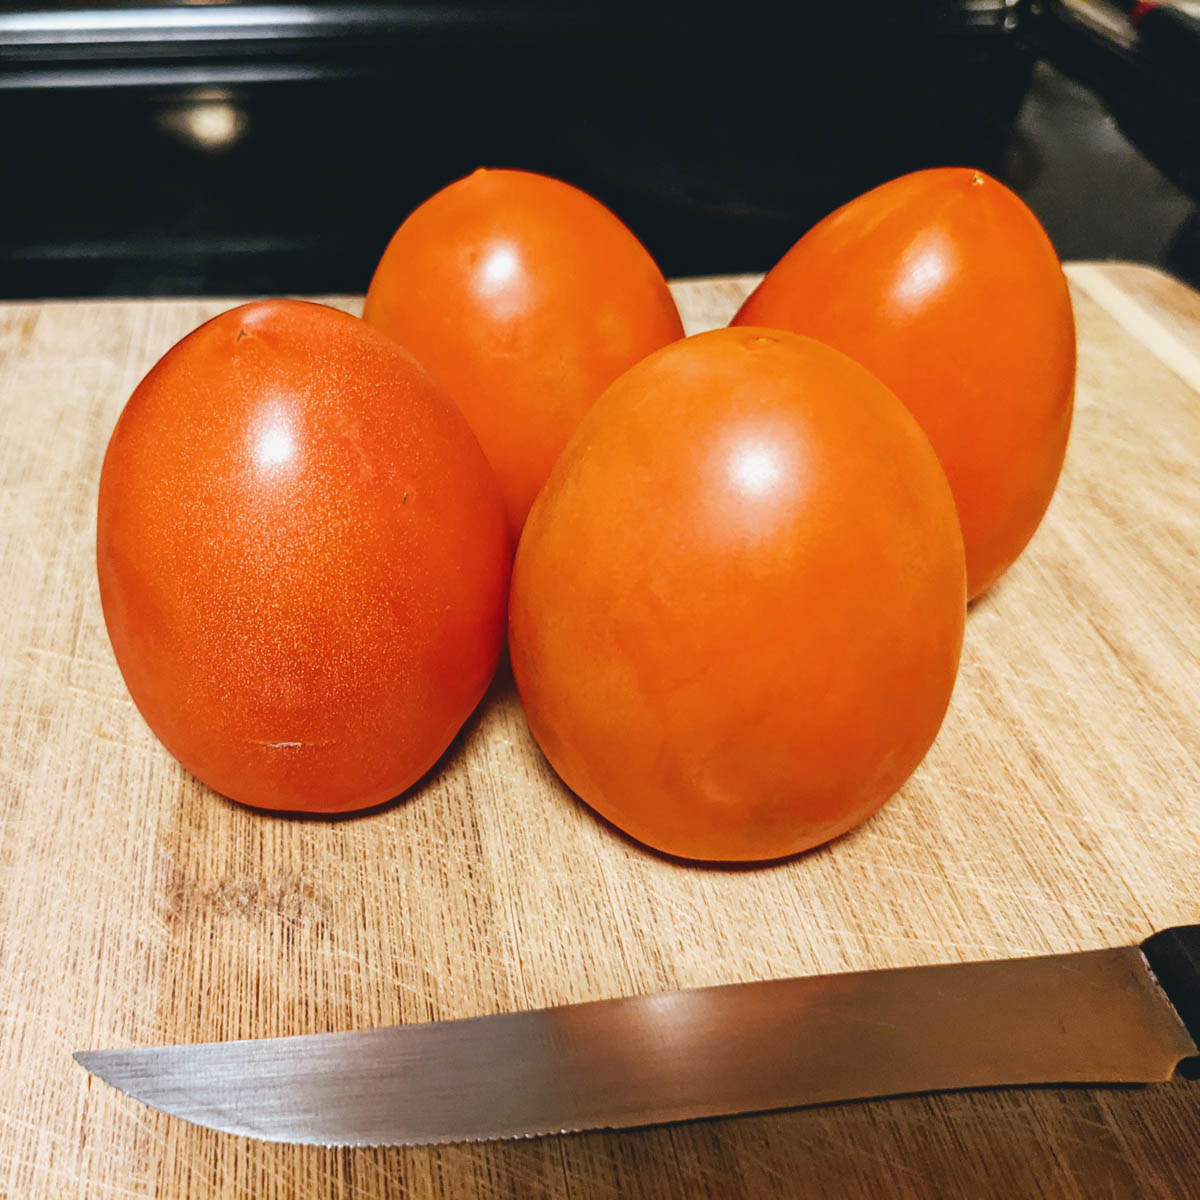 Plum Tomatoes Fresh and Ripe on a cutting Board with a Knife